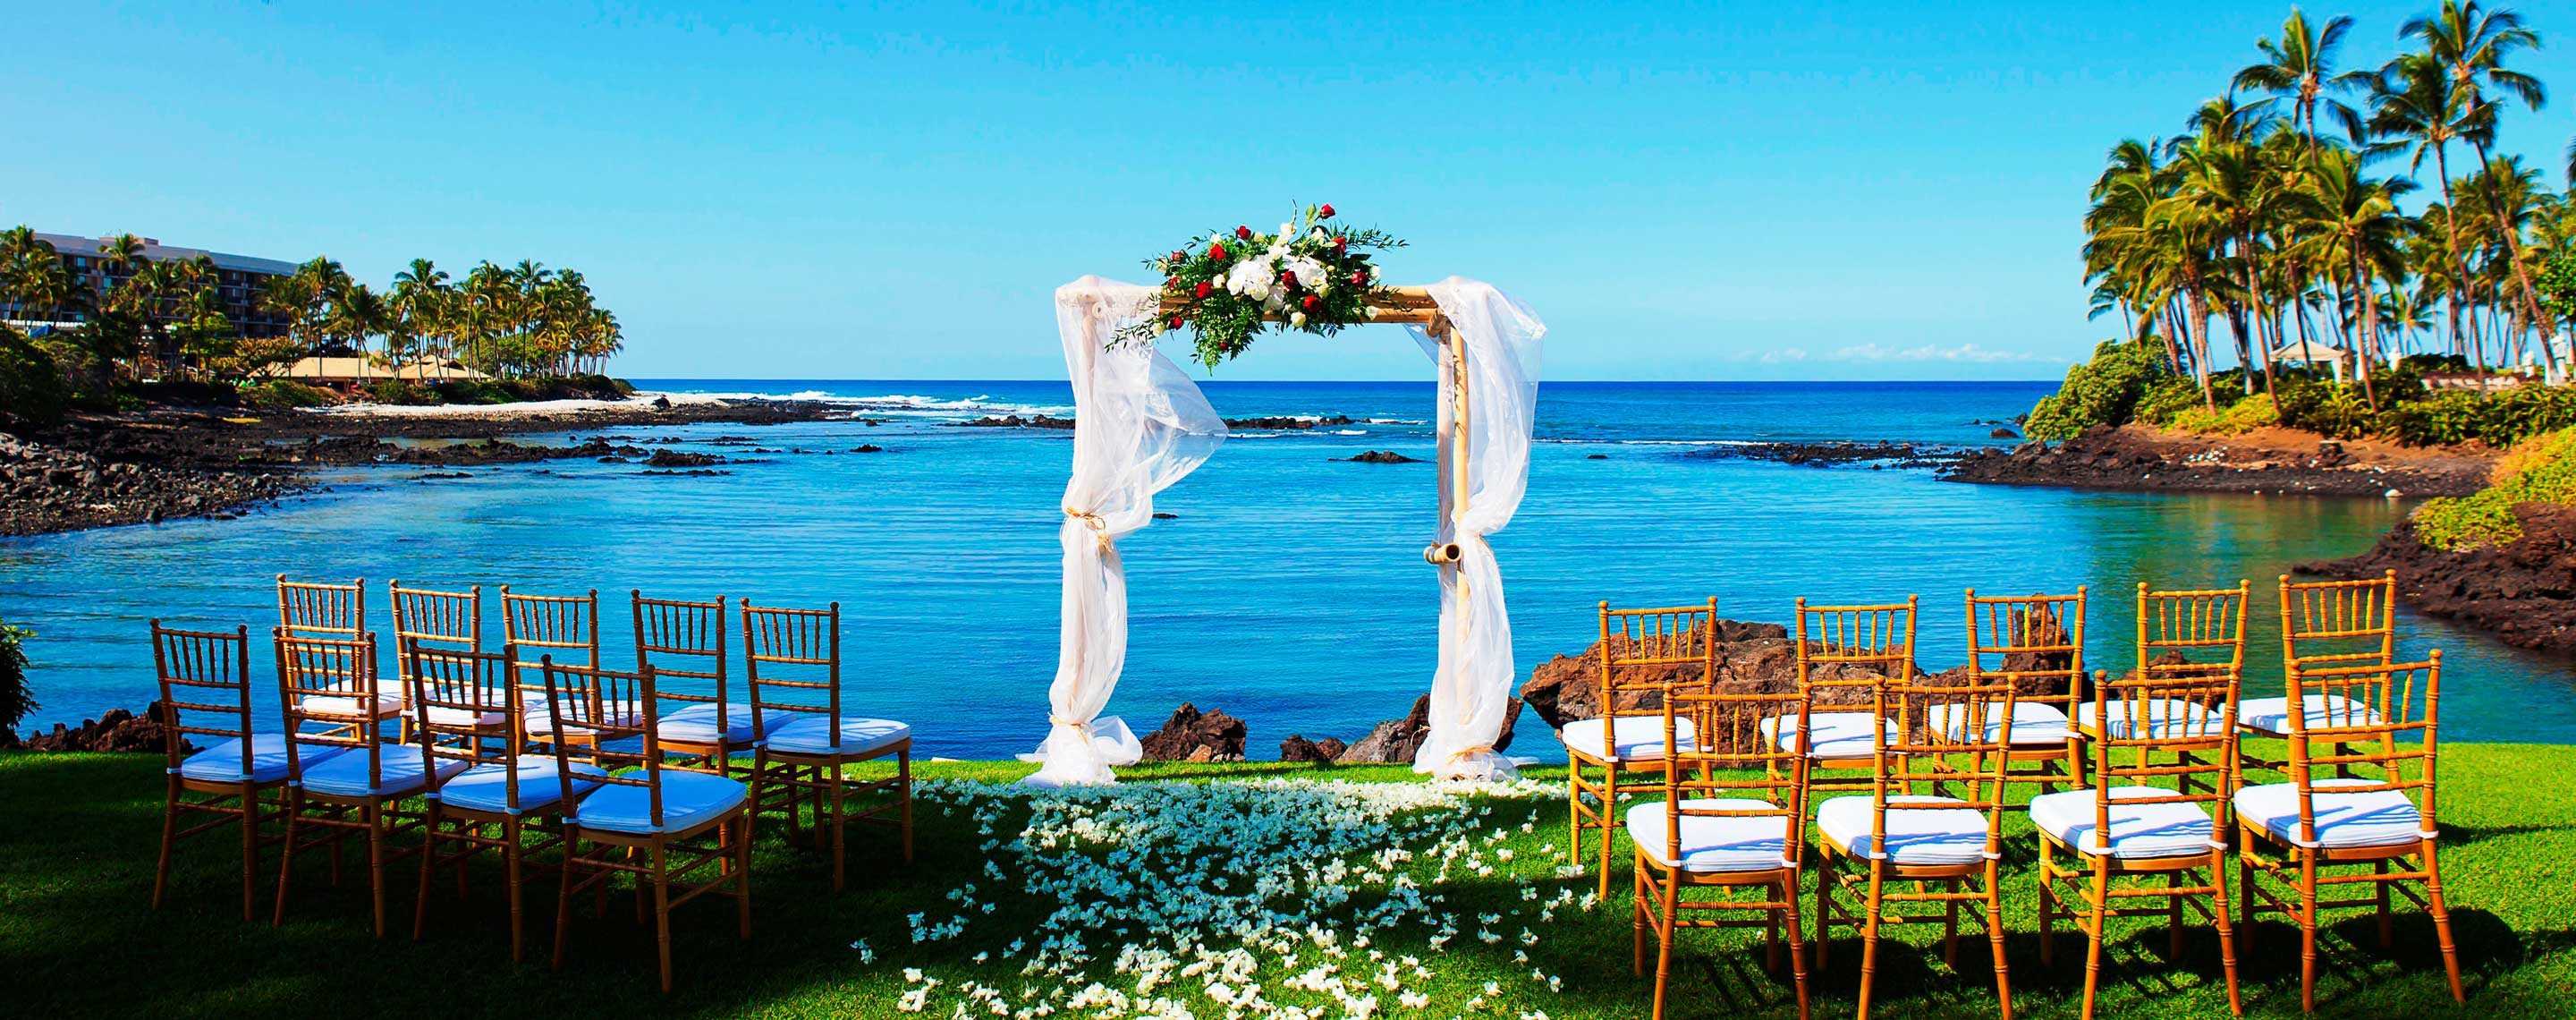 Hawaii wedding packages at hilton waikoloa village junglespirit Images